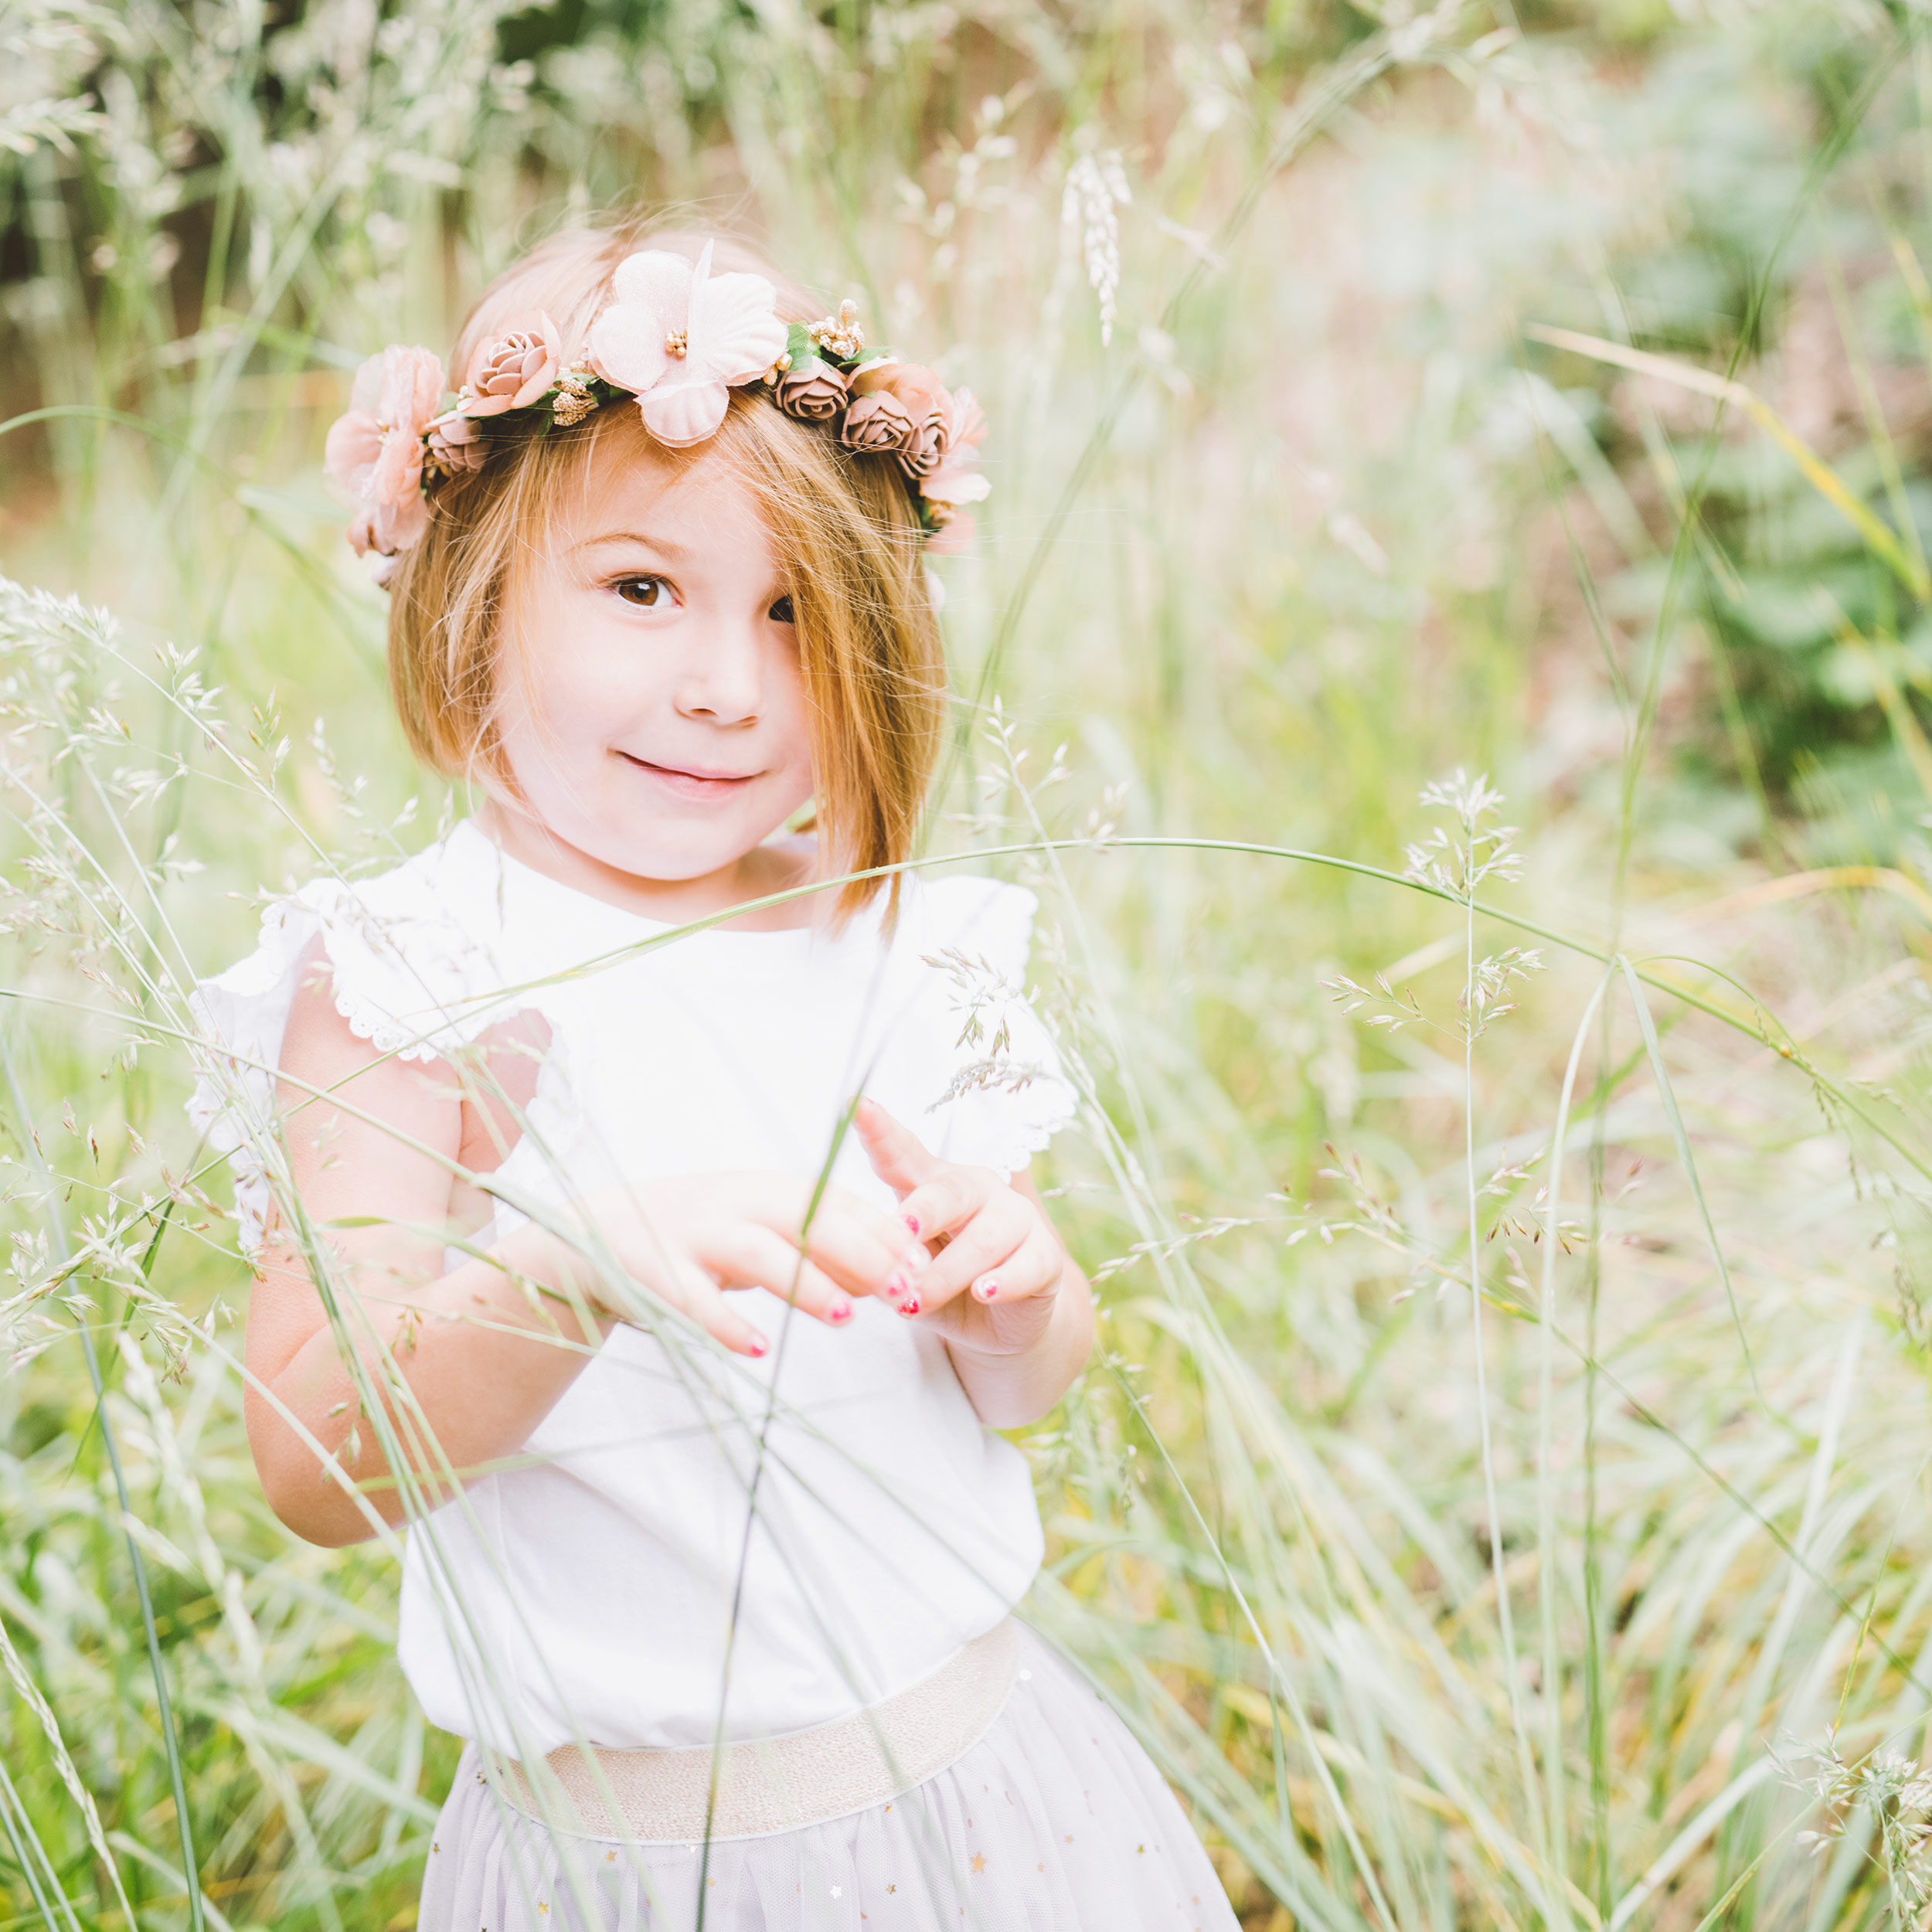 beautiful-girl-photographed-through-the-grass.jpg